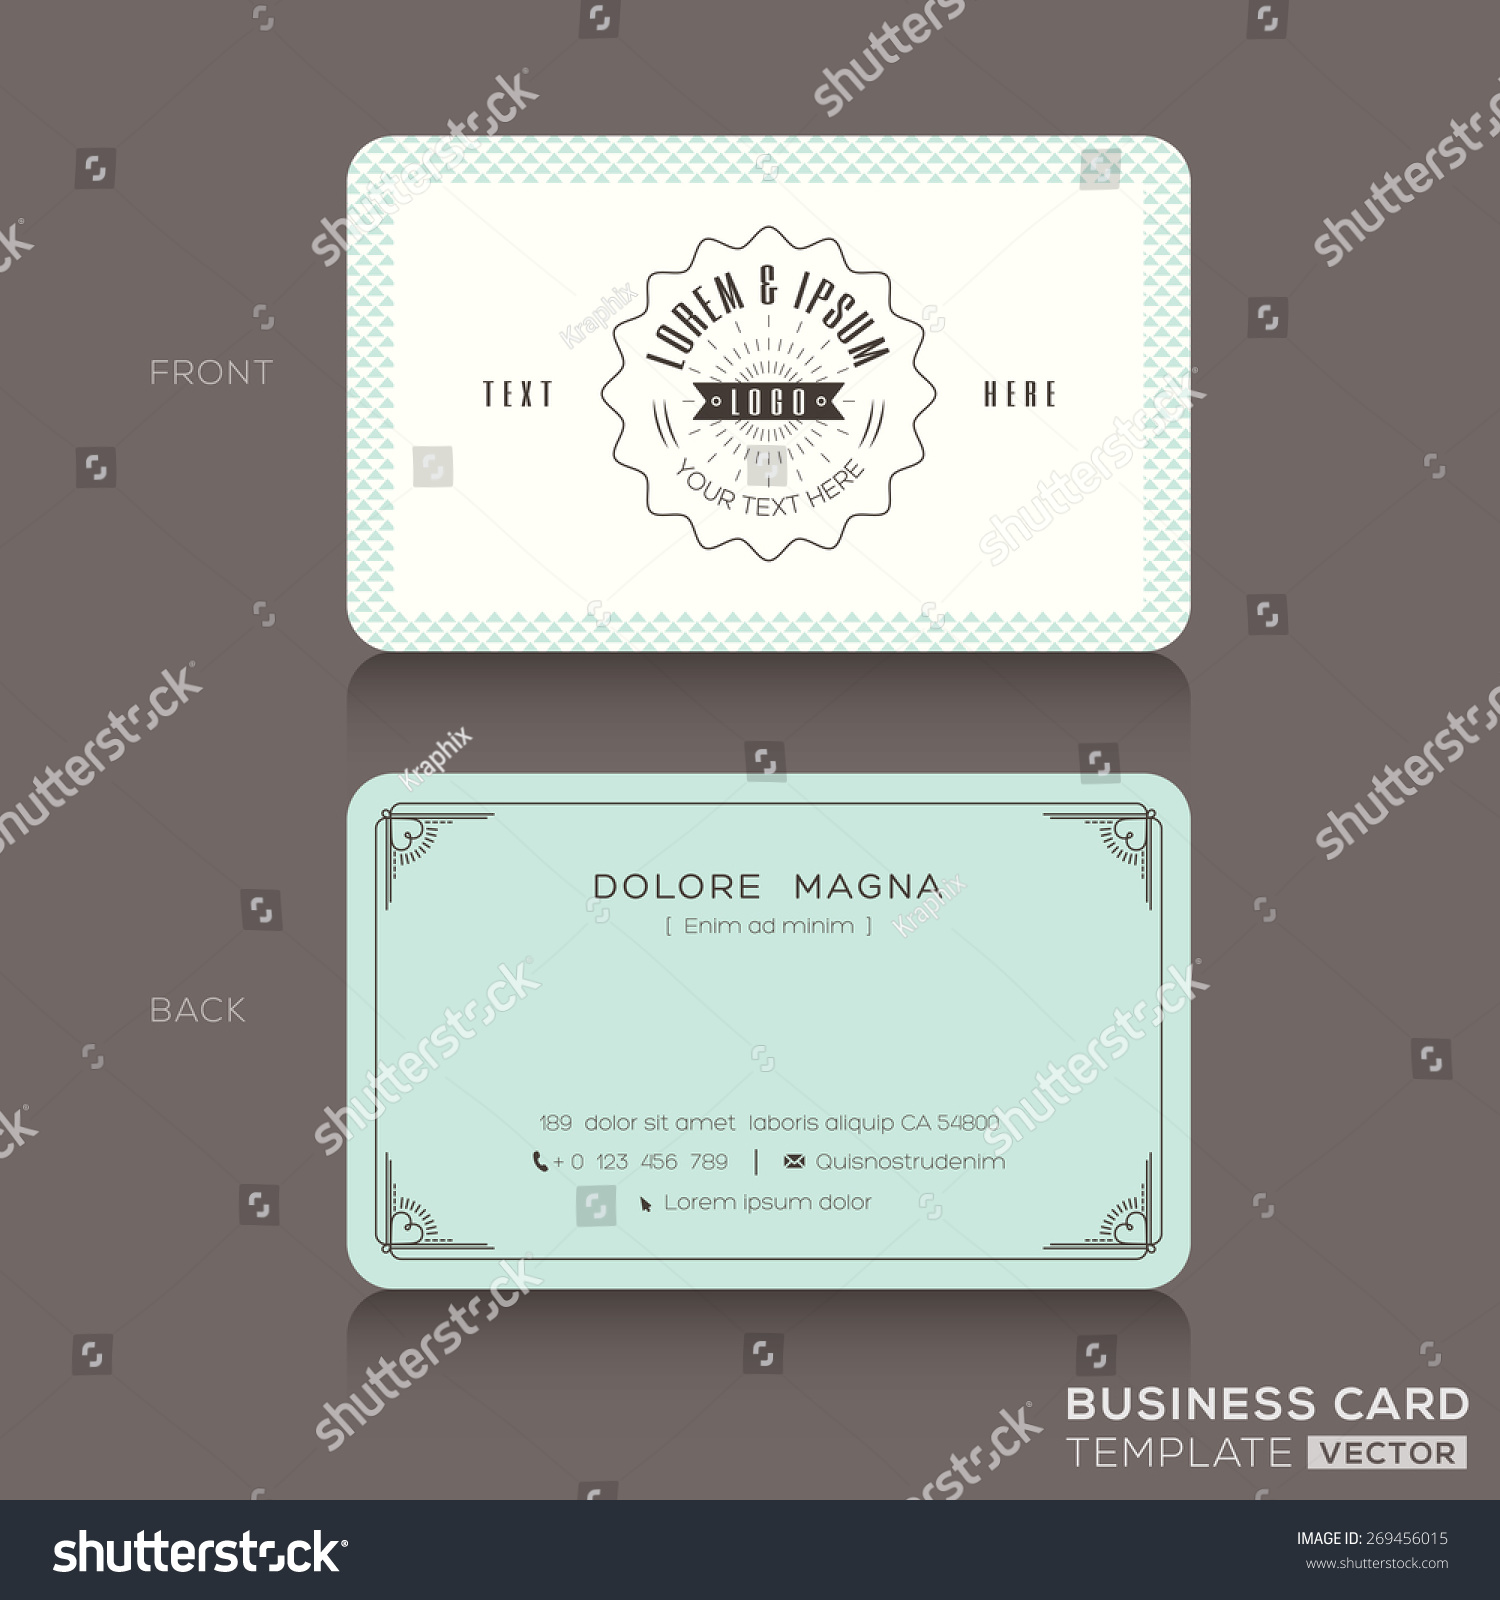 Retro hipster business card design template stock vector for Hipster business card